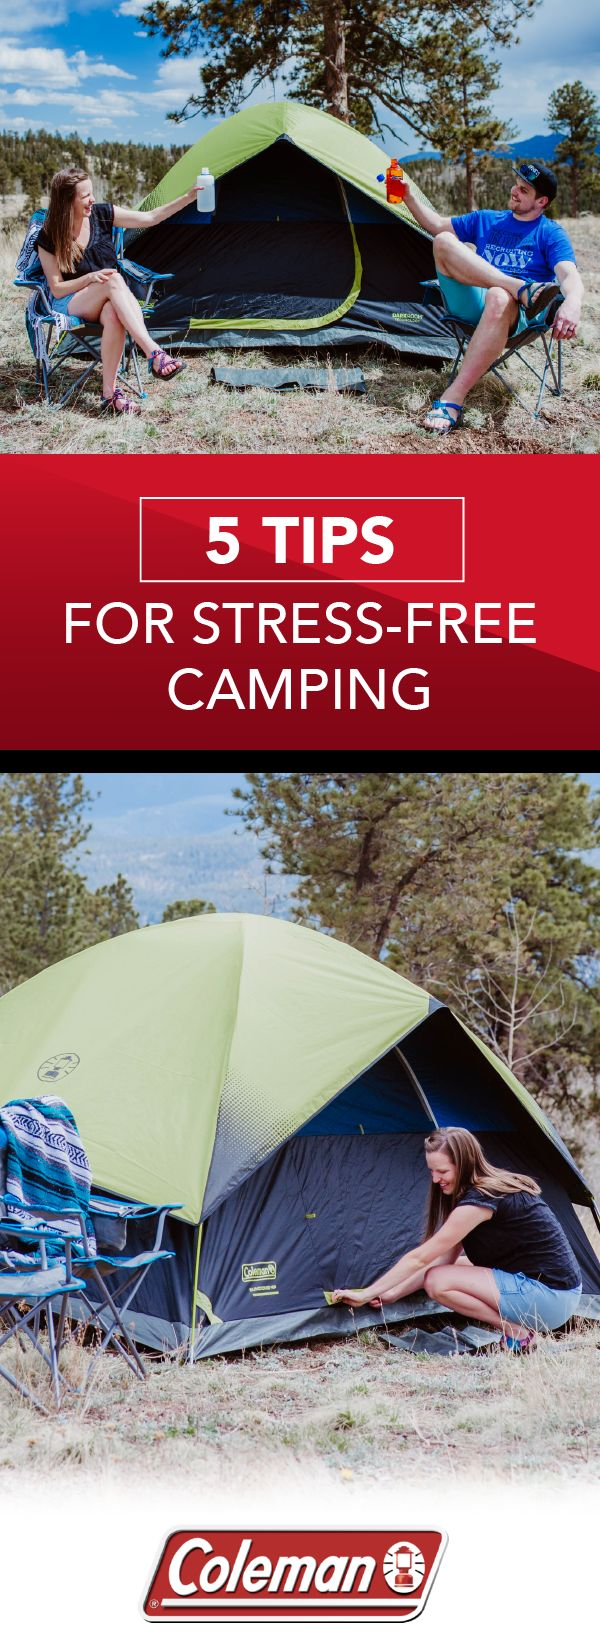 3562 best Camping and Cooking images on Pinterest ...